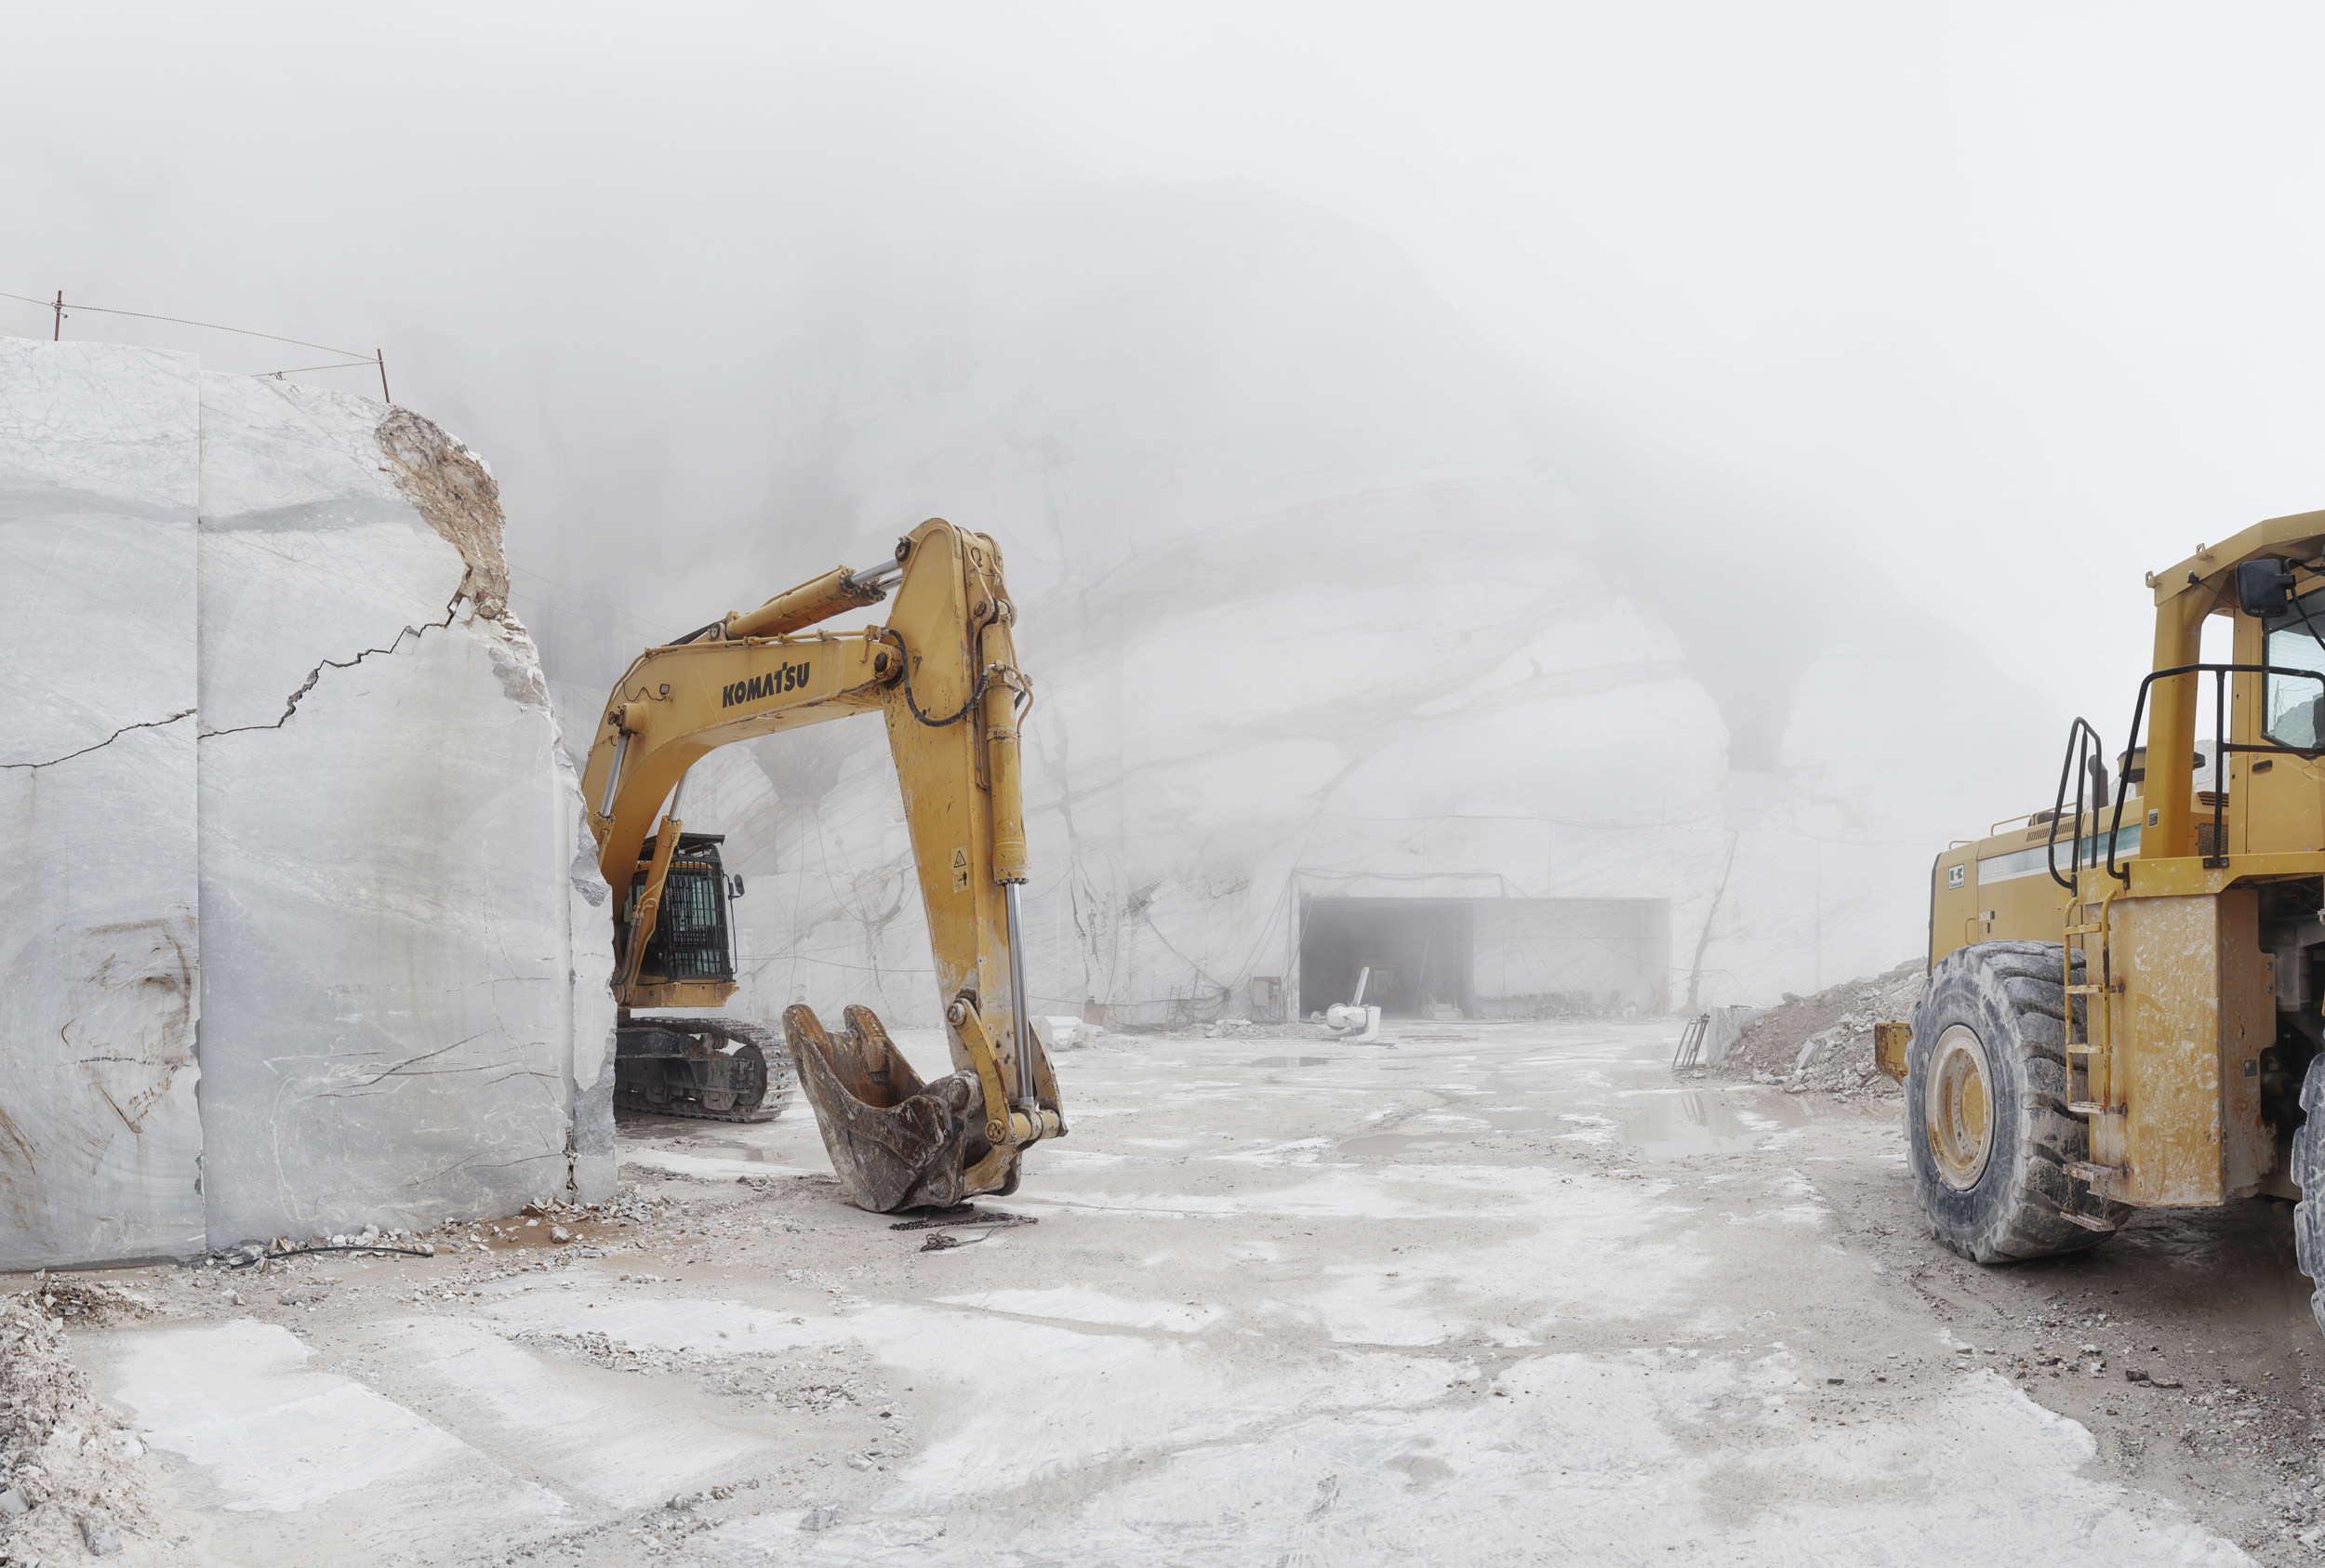 Excavators - Carrara, Italy 2015